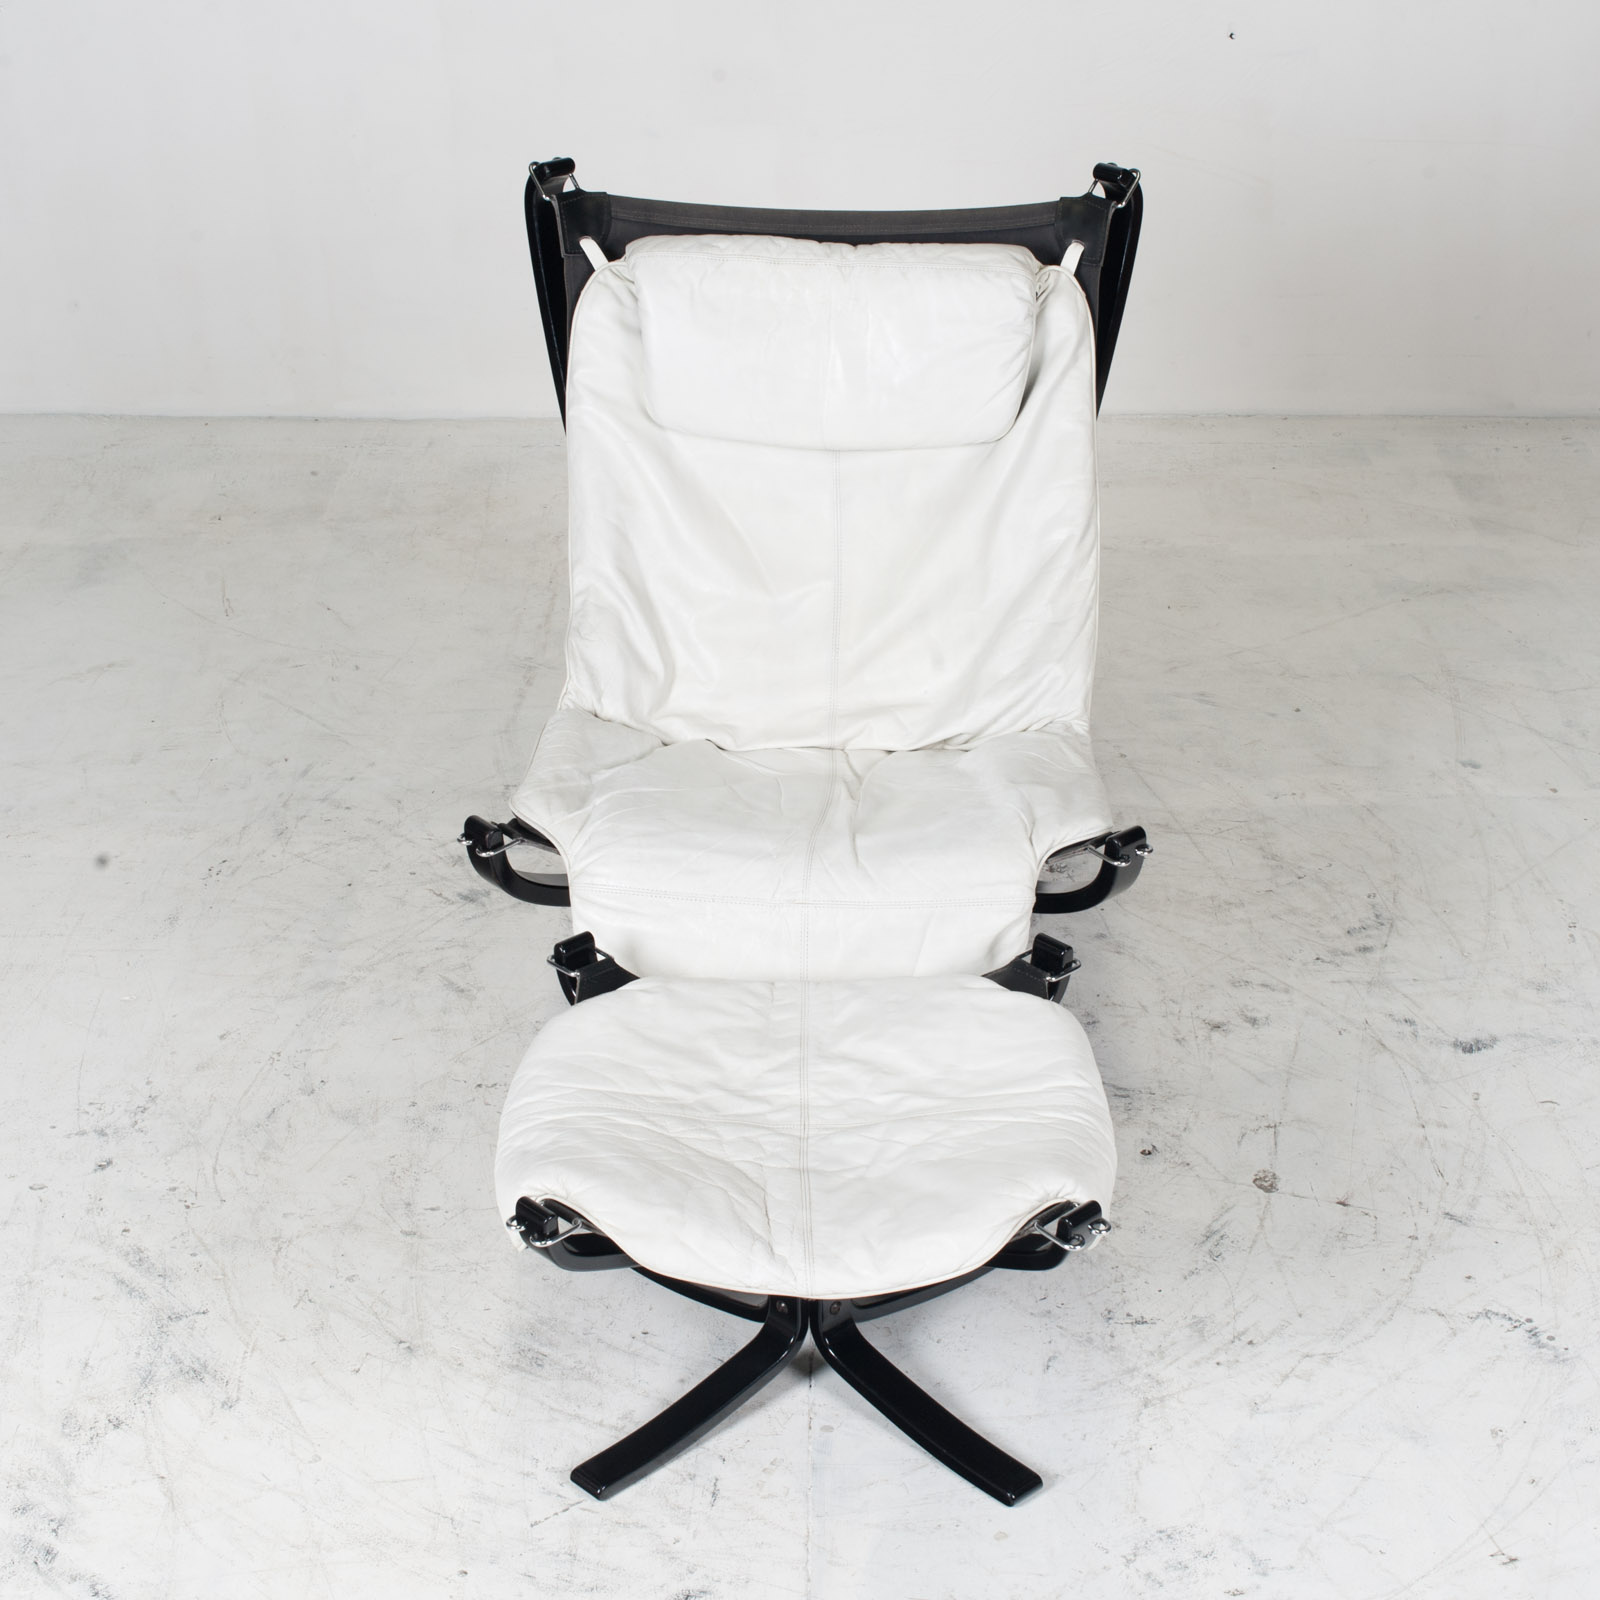 High Back Falcon Armchair By Sigurd Ressell For Vatne Mobler In Patinated White Leather With Footstool 1970s Norway 03